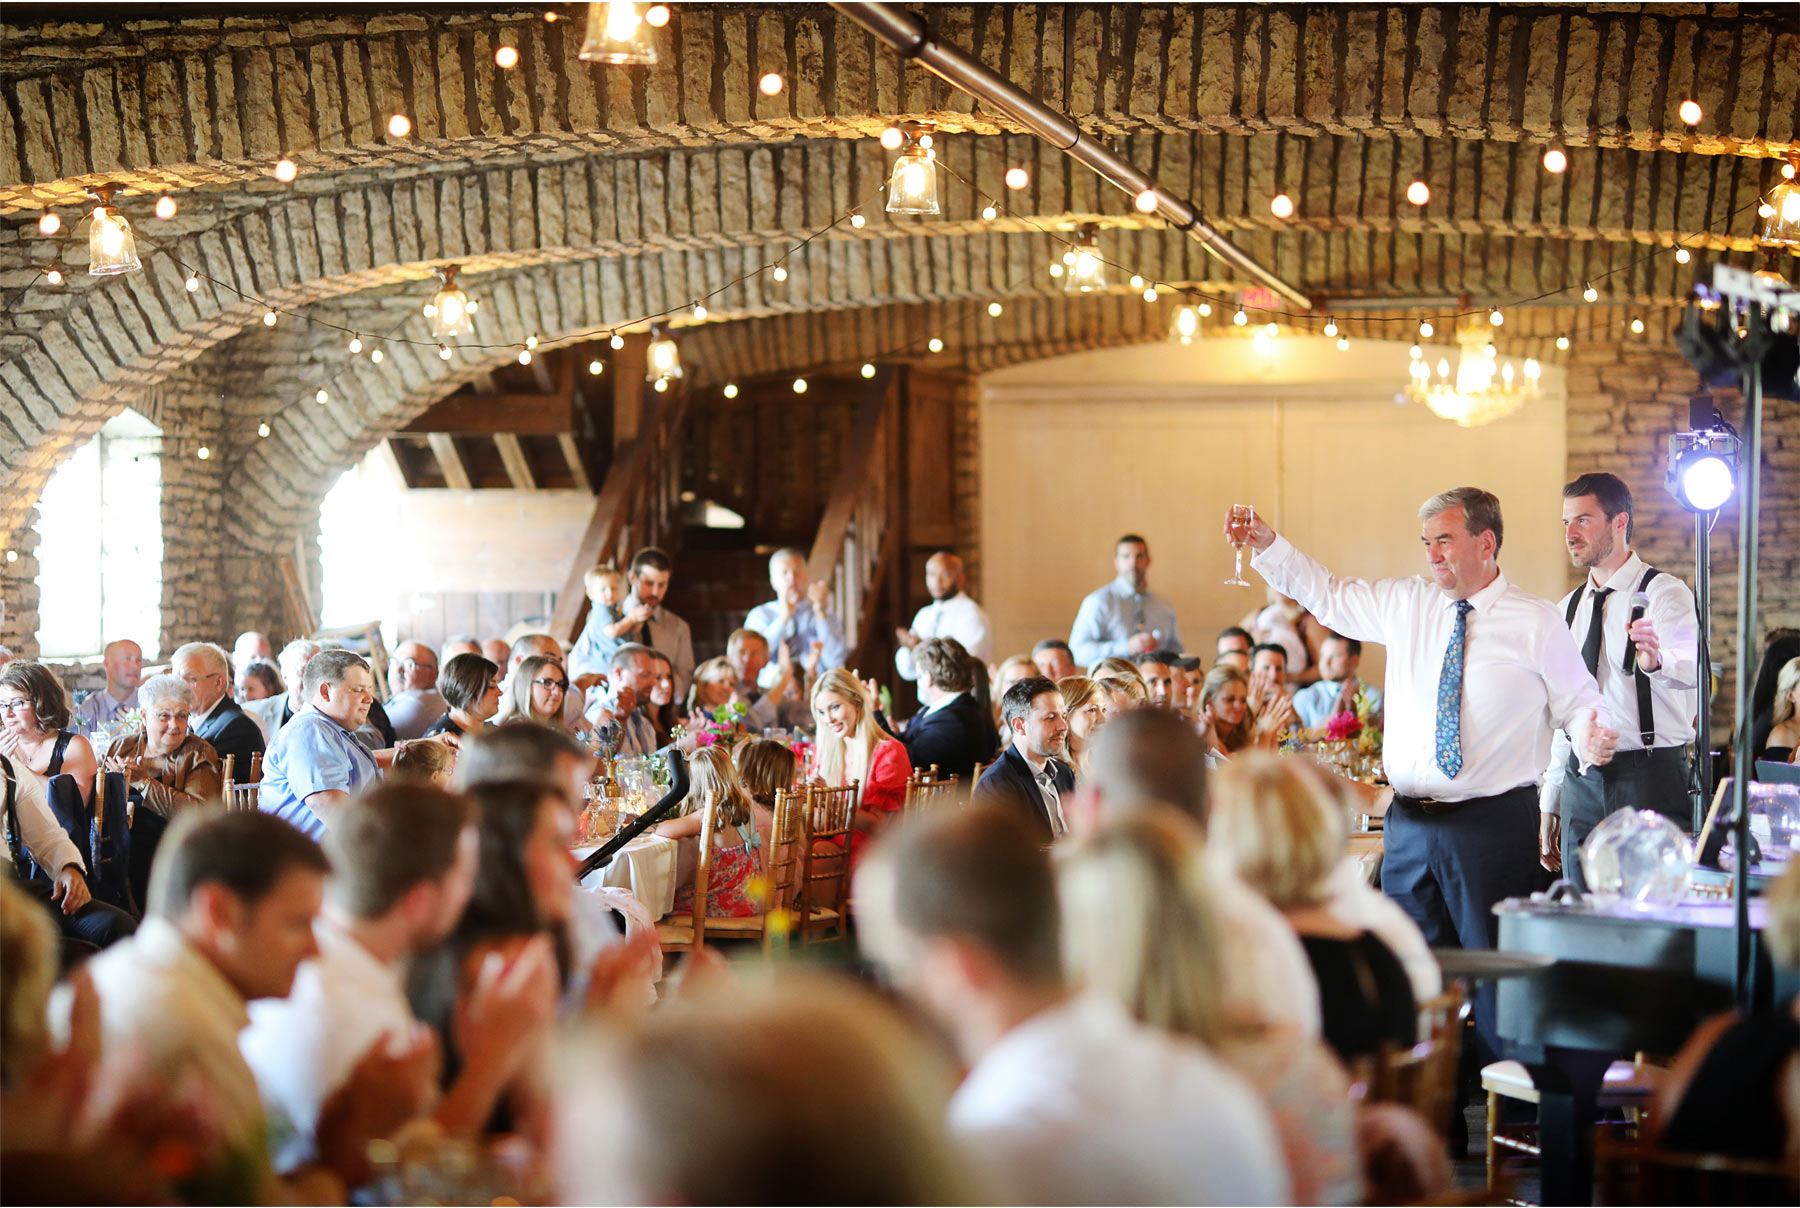 22-Vick-Photography-Rochester-Minnesota-Mayowood-Stone-Barn-Country-Wedding-Reception-Toast-Lizz-and-Brady.jpg